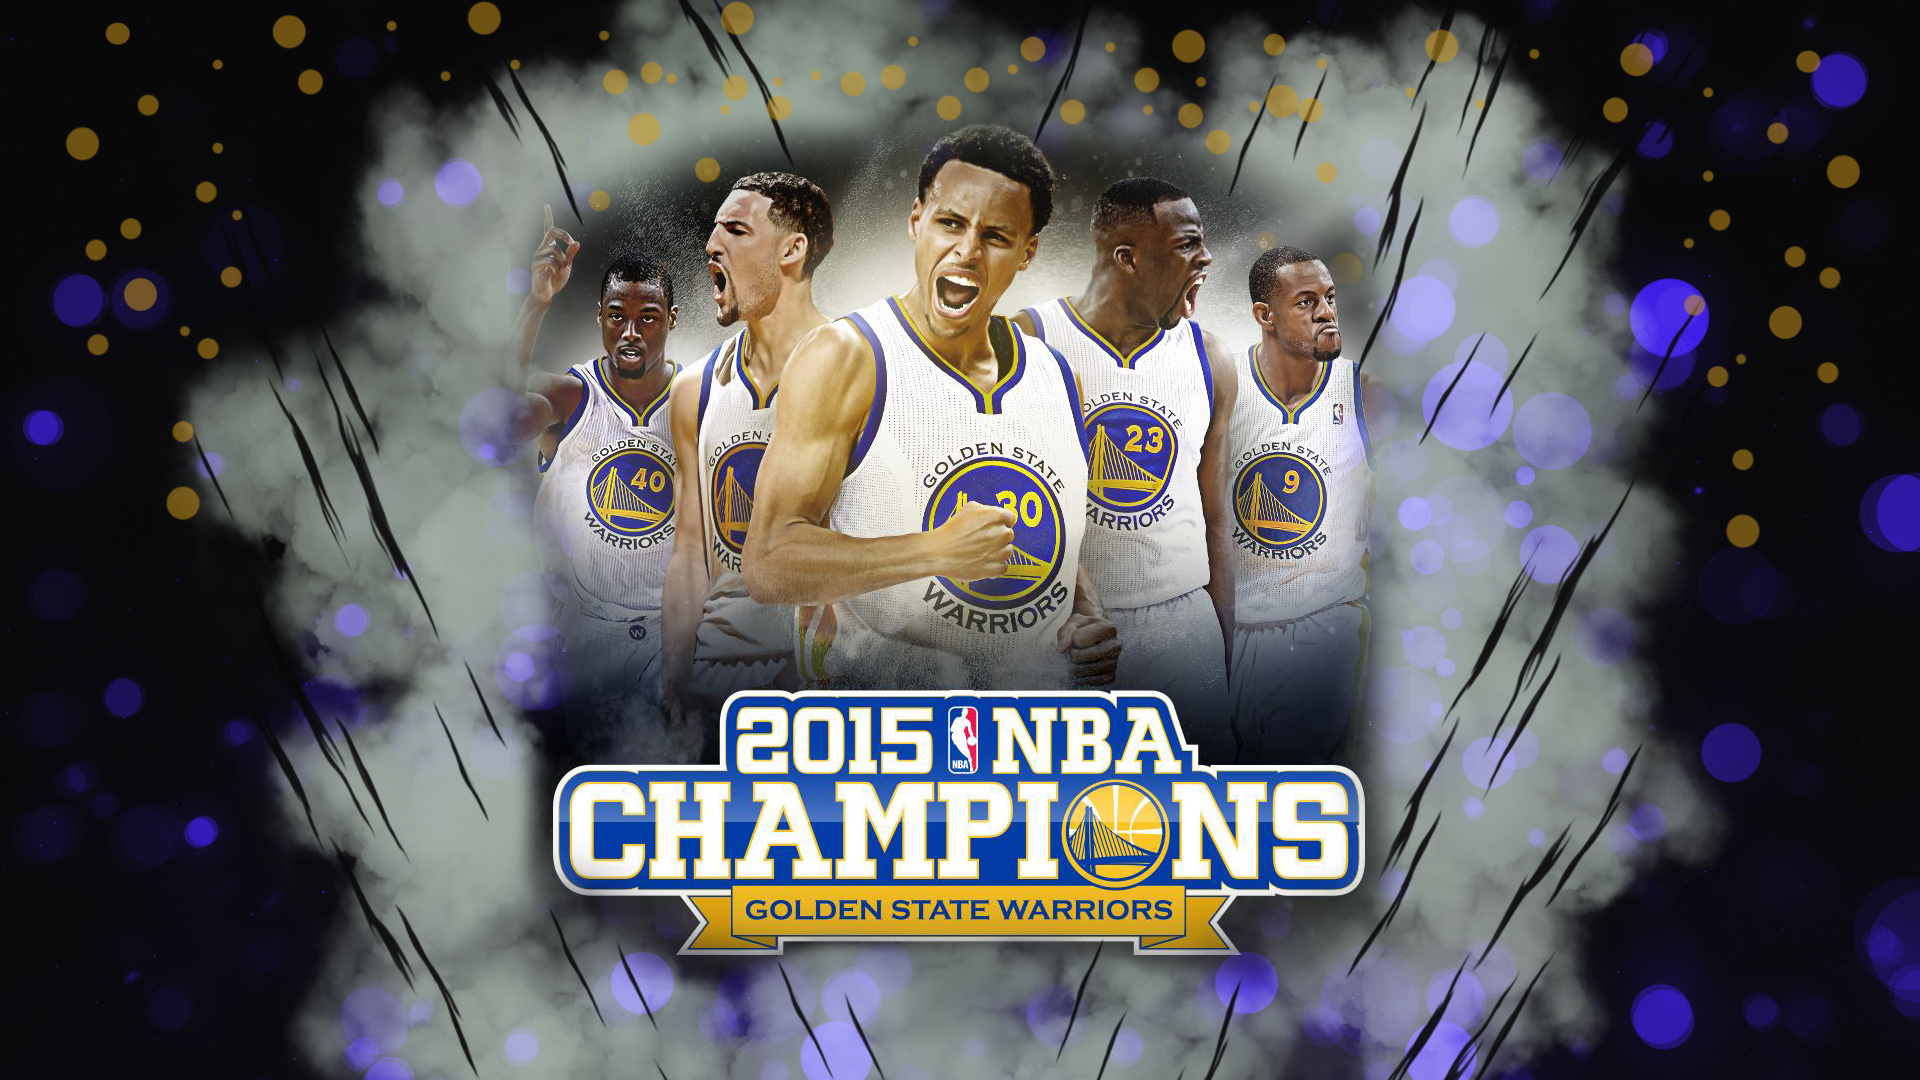 Golden State Warriors Wallpaper 2015 Golden State Warriors Wallpaper 1920x1080